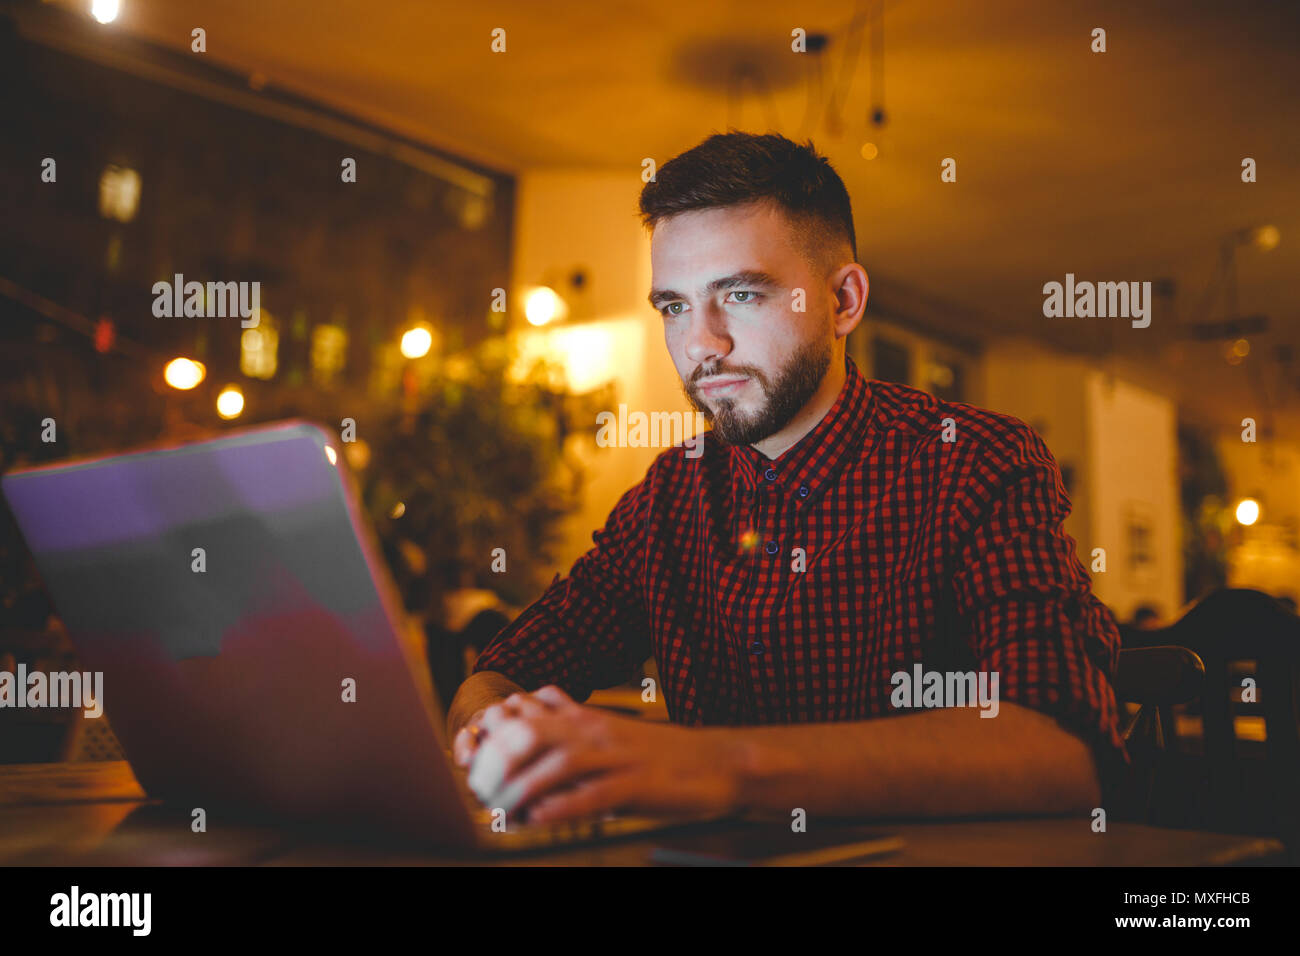 A young handsome Caucasian man with beard and toothy smile in a red checkered shirt is working behind a gray laptop sitting at a wooden table. Hands on the keyboard. In the evening at the coffee shop - Stock Image